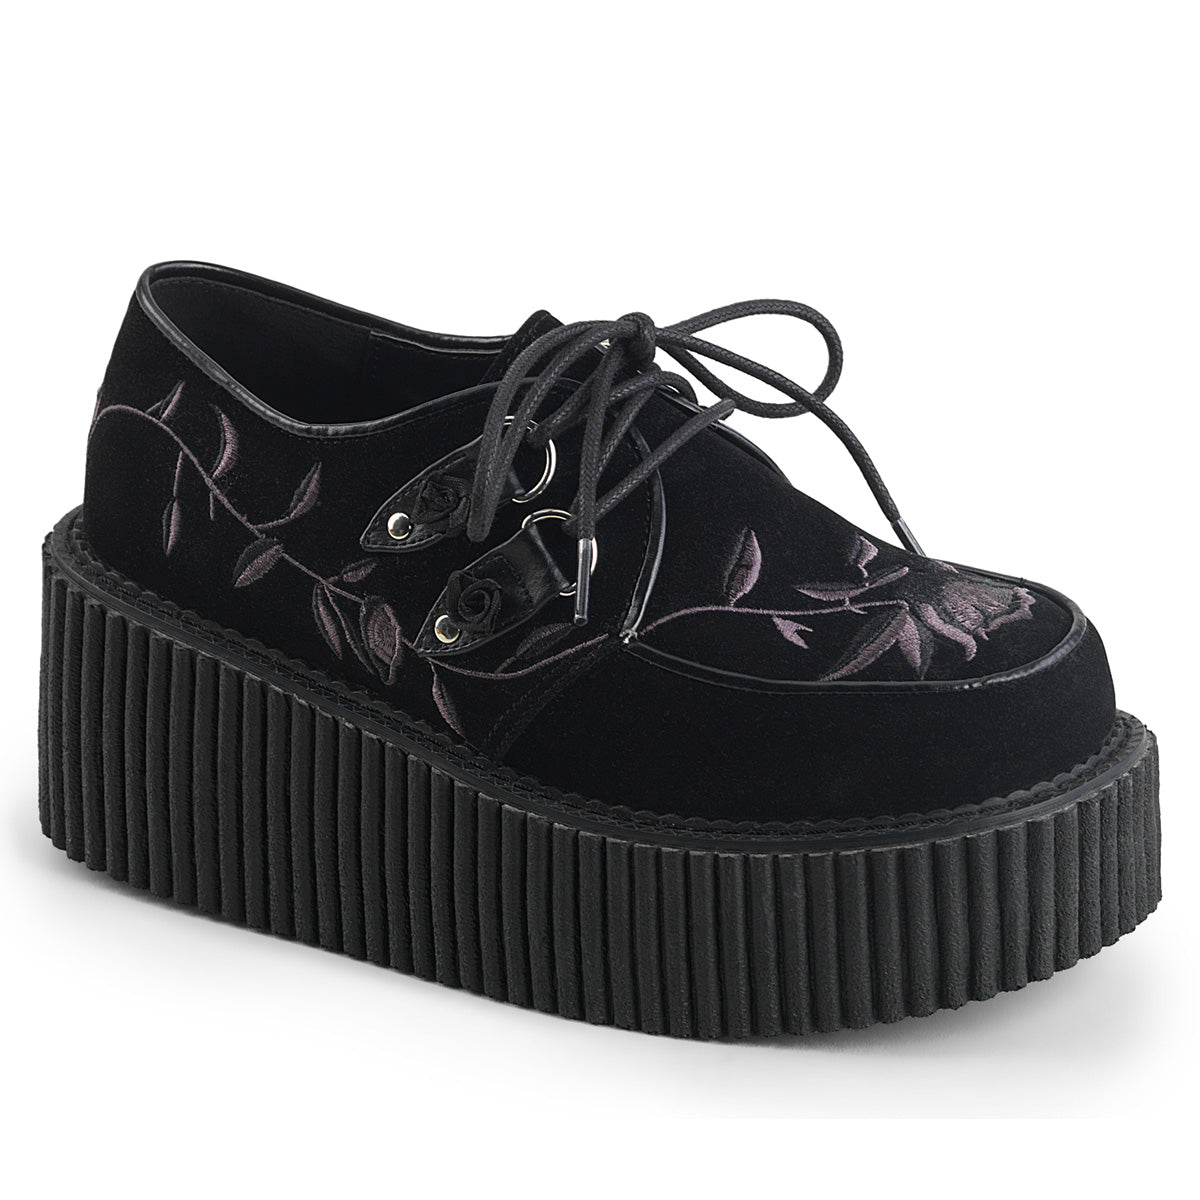 "Demonia CREEPER-219 Black Velvet 3"" (75mm) Platform Lace Up Creeper Featuring Embroidery Flower"